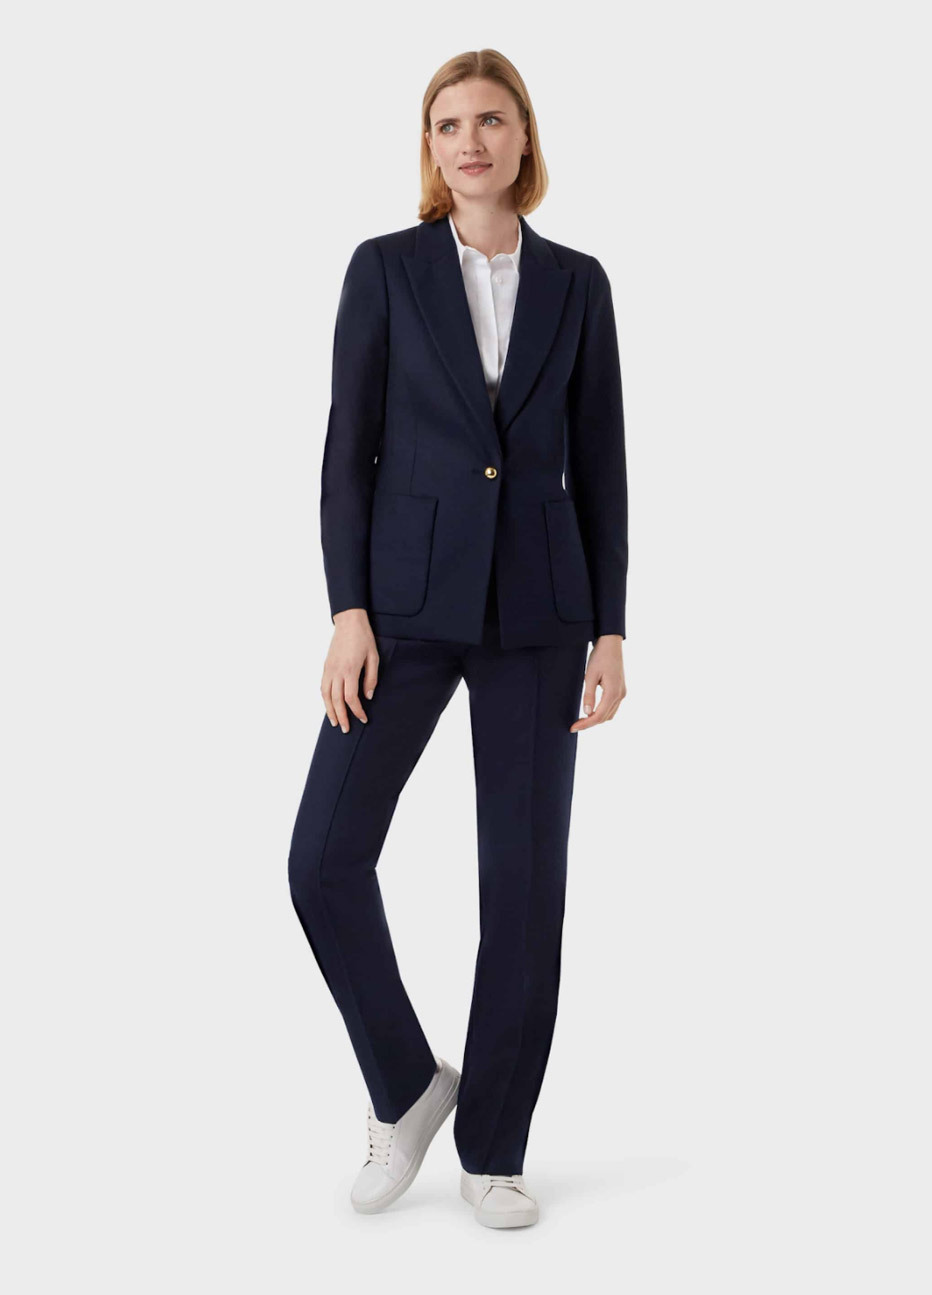 Women's blazer in black worn with matching work trousers in black, with a white blouse underneath and white trainers, by Hobbs.